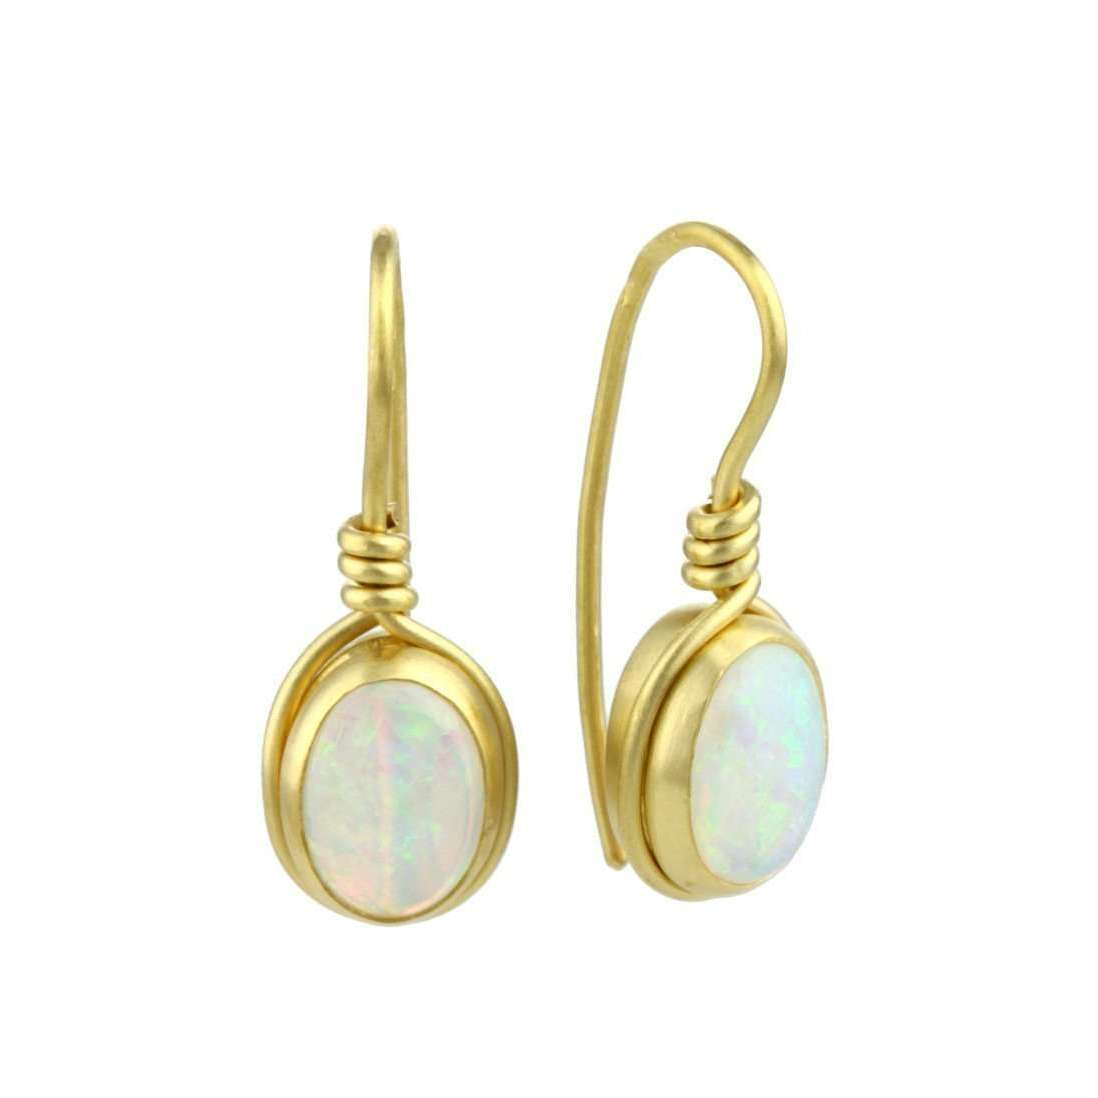 9kt Gold Opal Earrings-Prism Design-JewelStreet EU